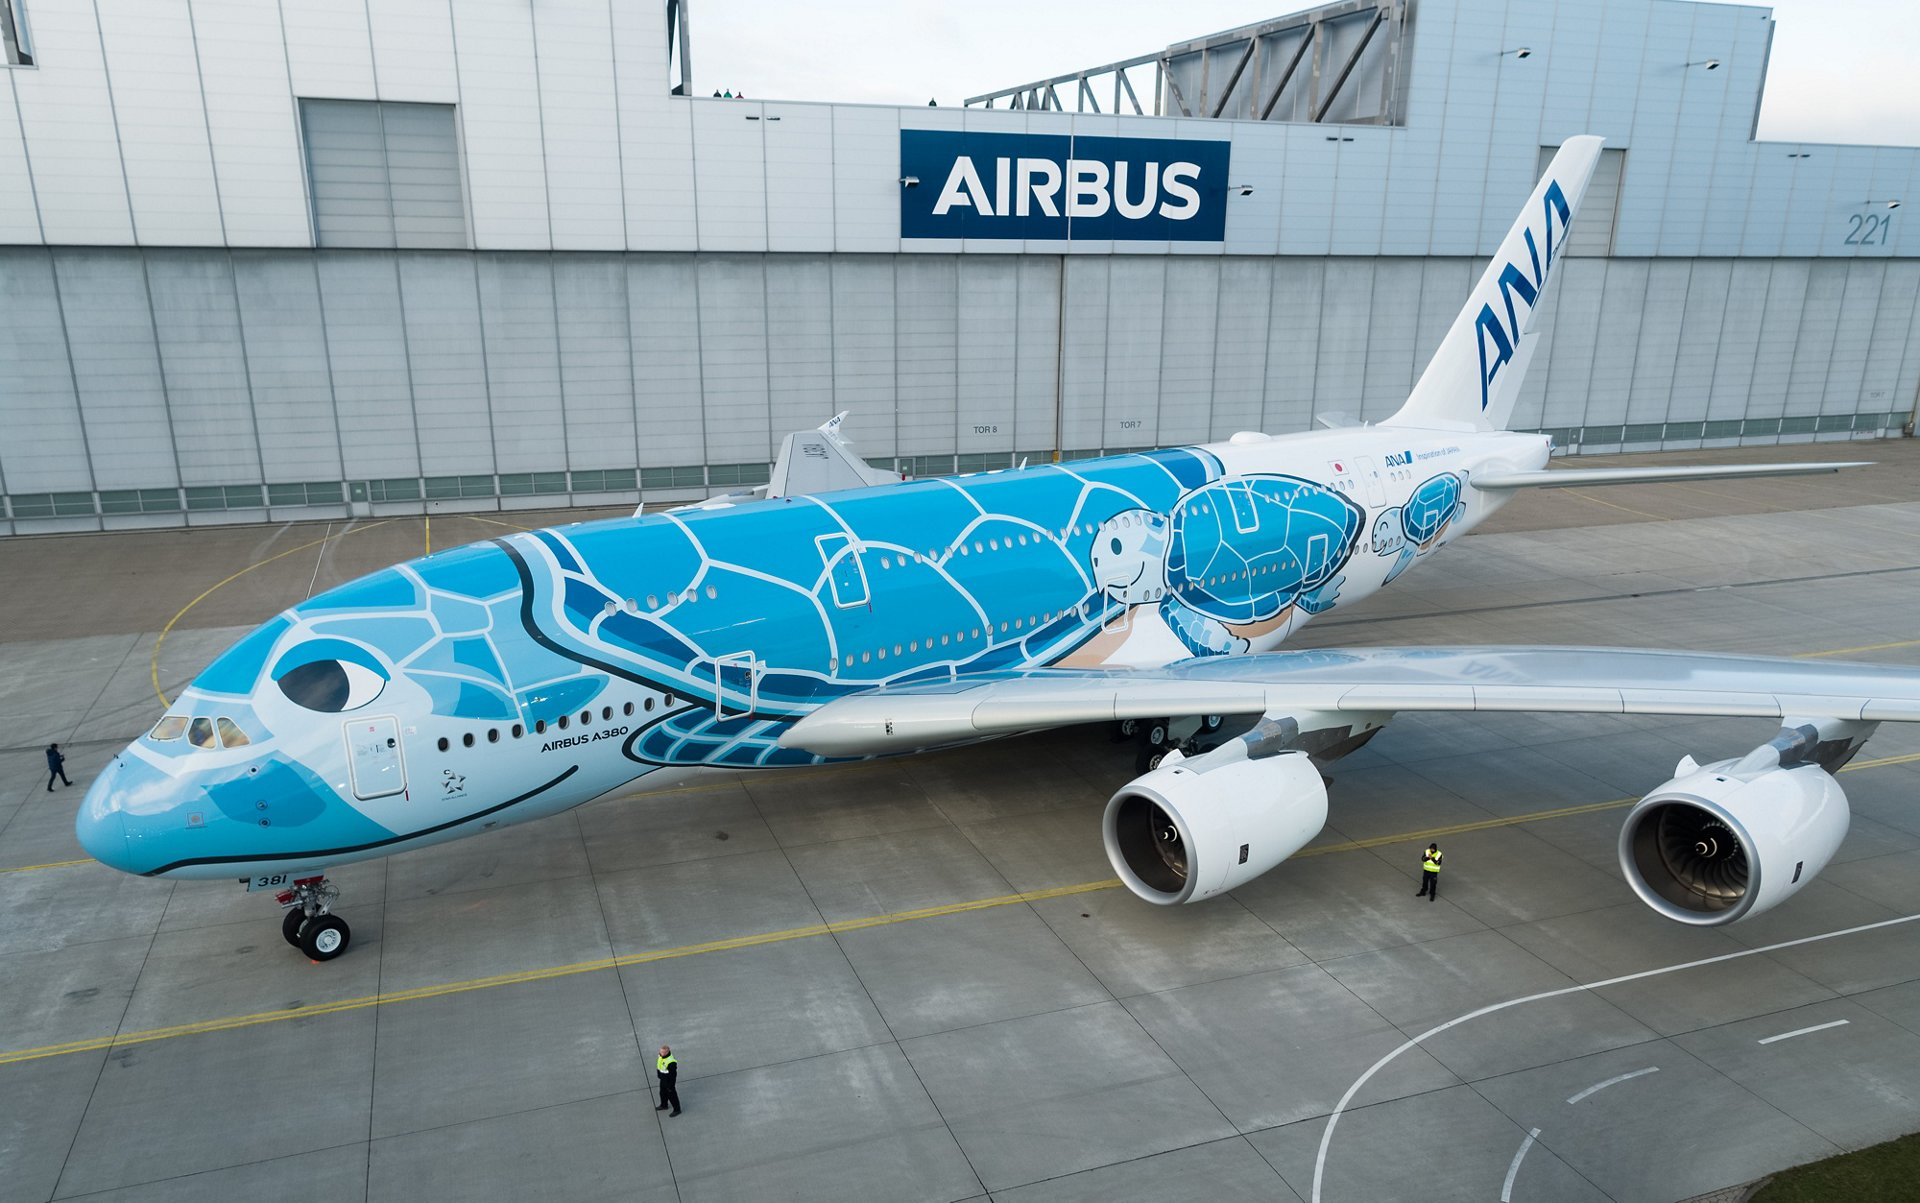 The first A380 for Japan's All Nippon Airways (ANA) seen after the roll-out from the Airbus paint shop in Hamburg, Germany